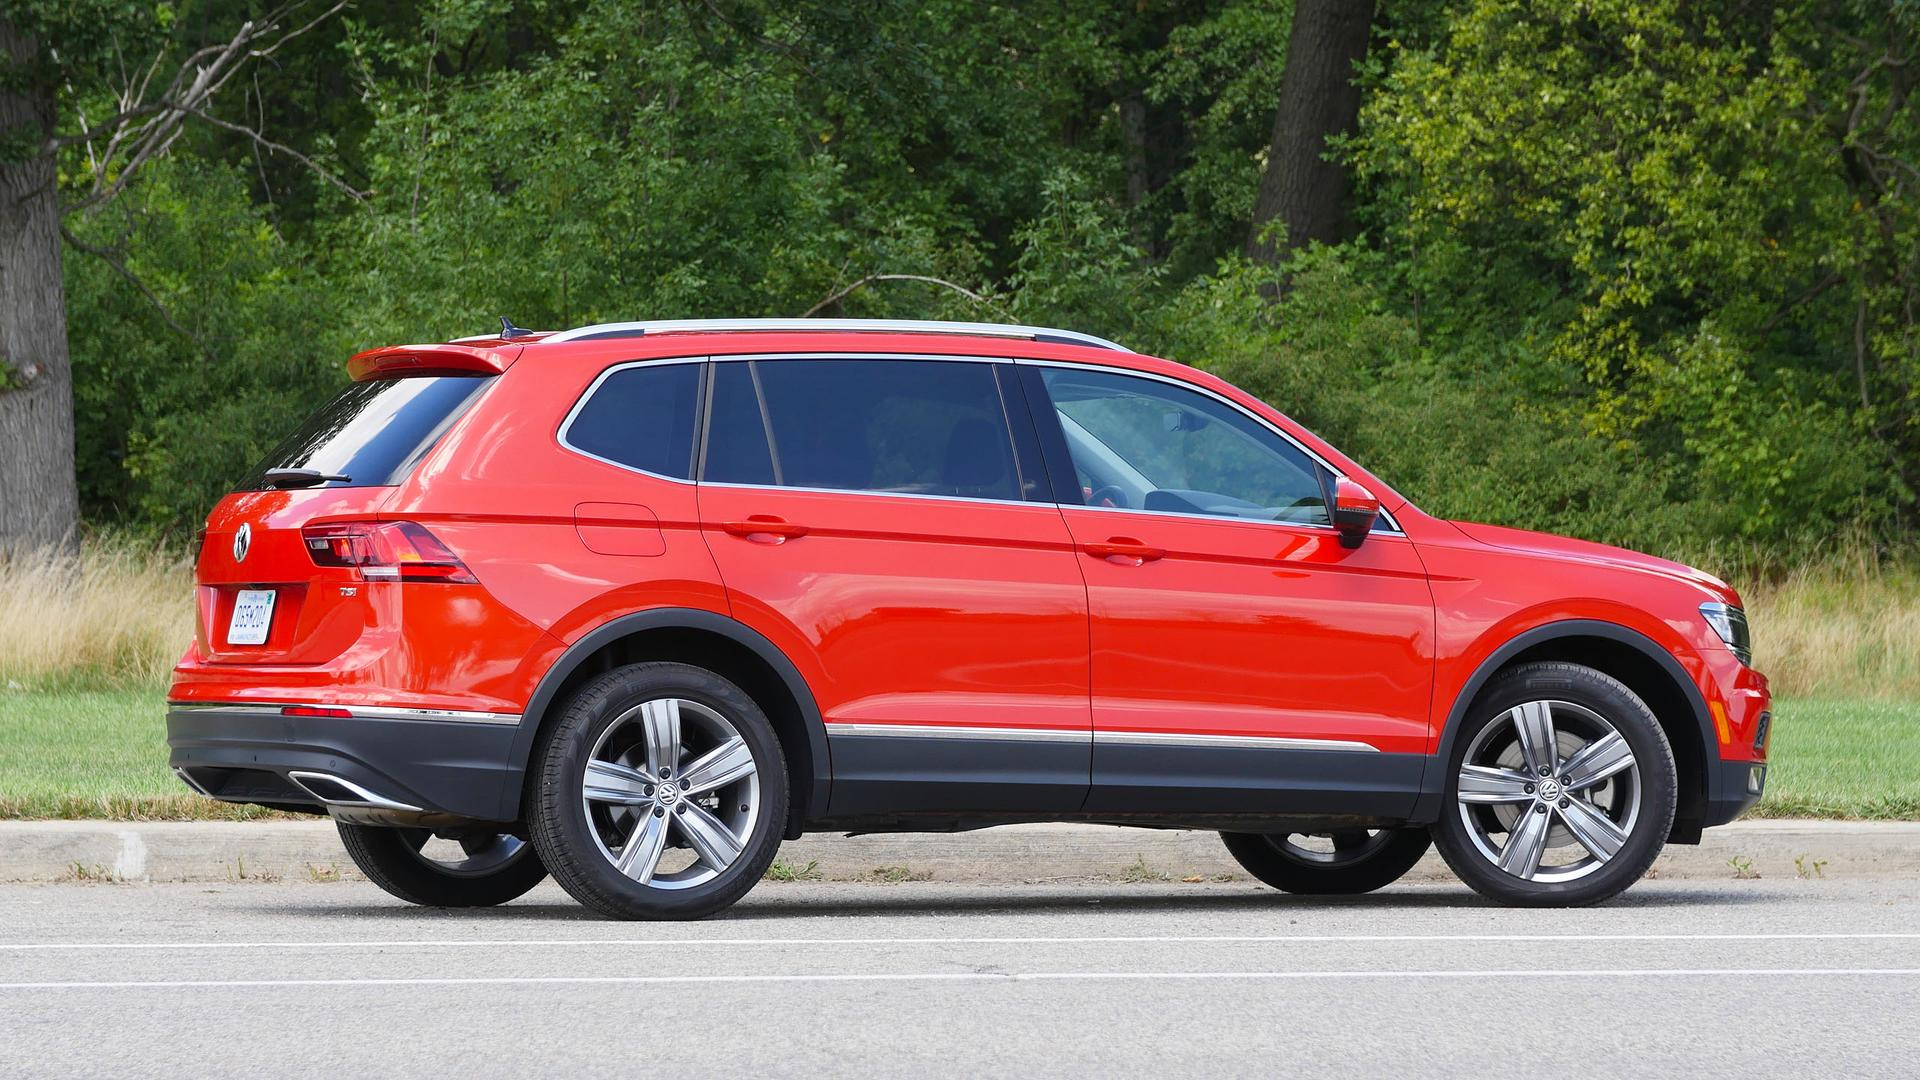 Vw Tiguan 2020 Review.2020 Vw Tiguan Gets Price Hike In Exchange For More Standard